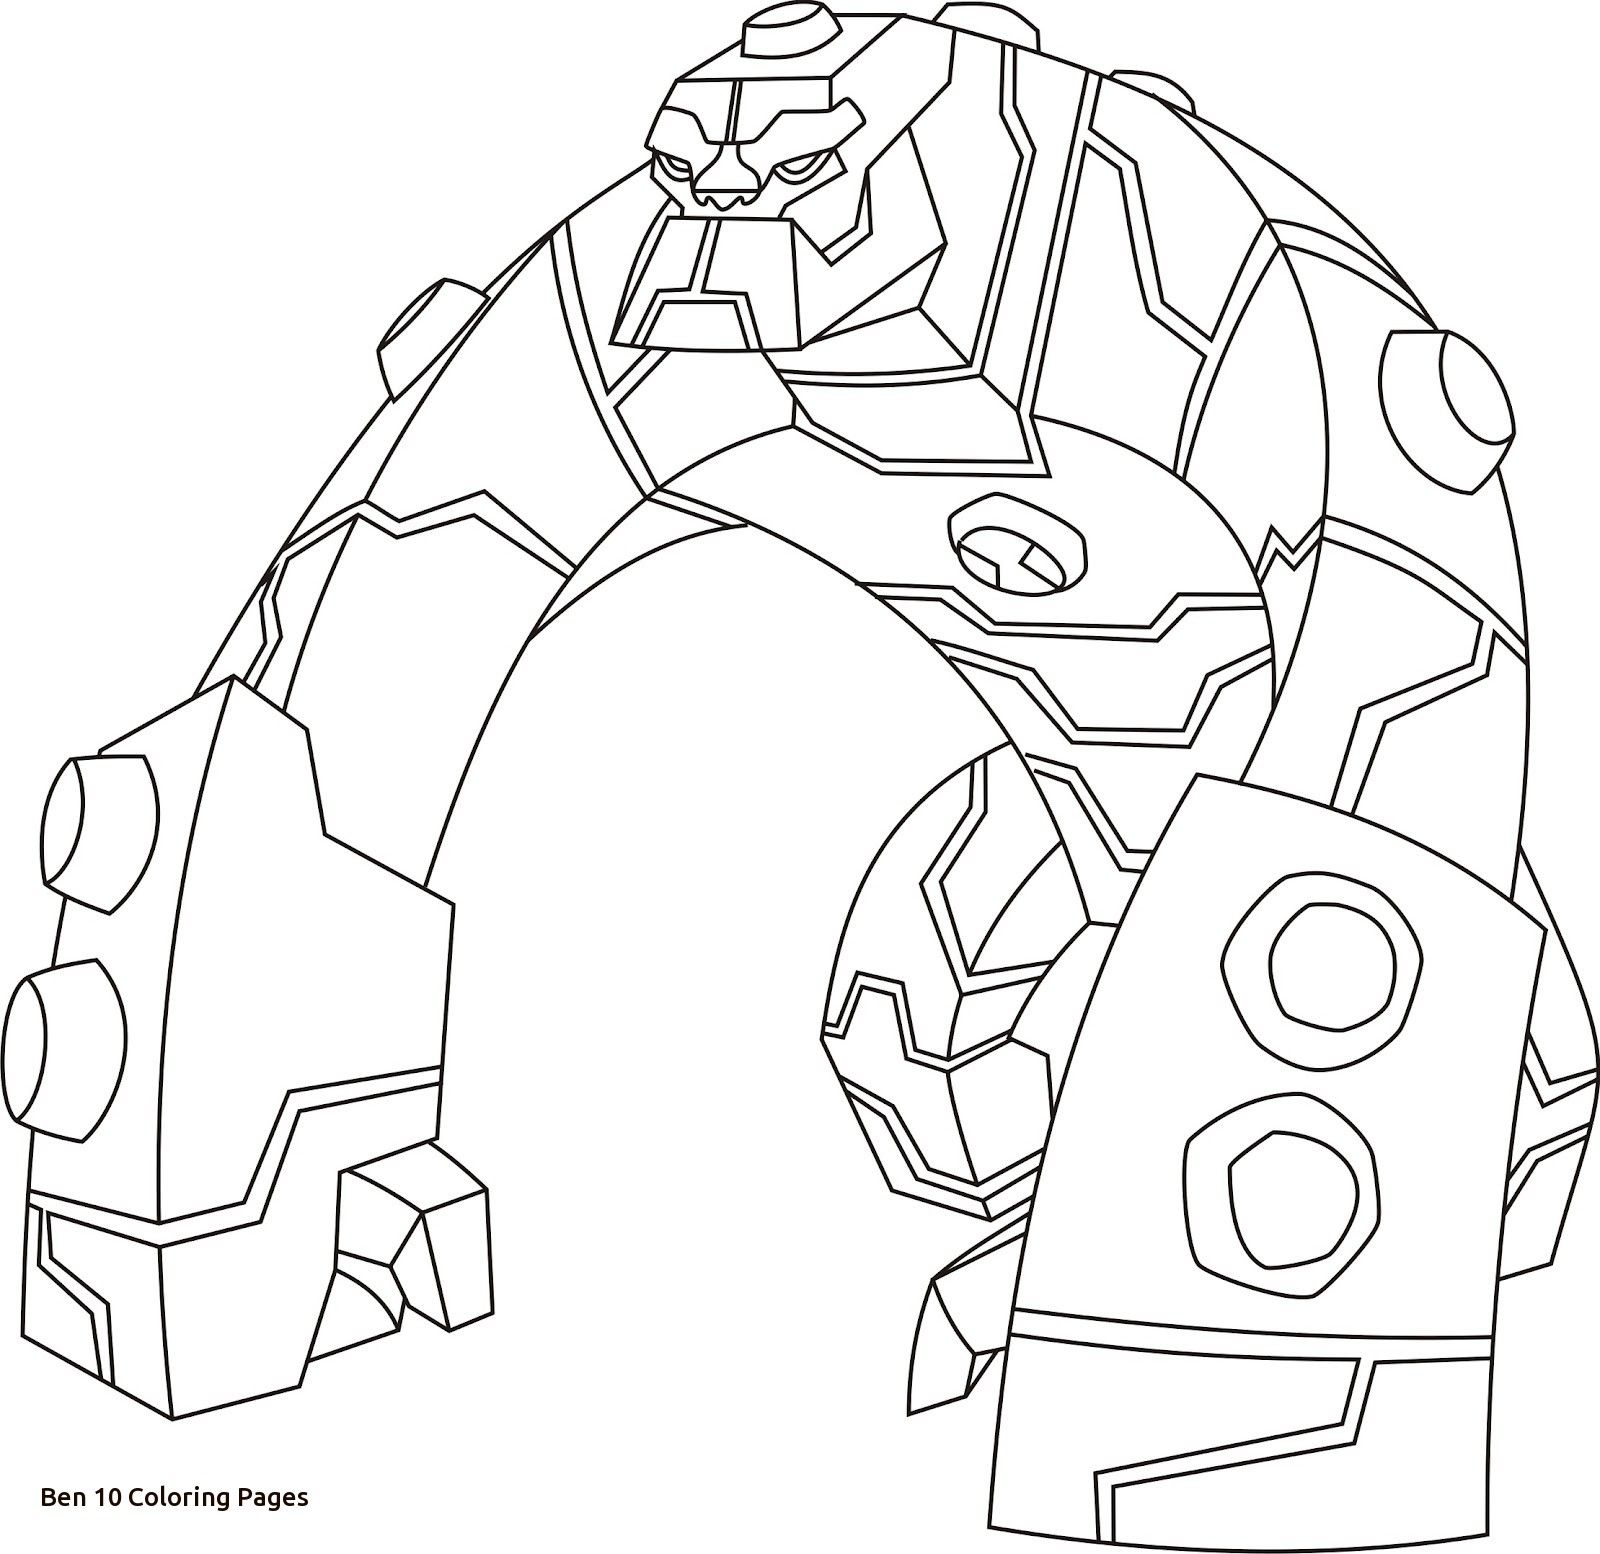 Free Coloring Pages Of Ben 10 Bloxx